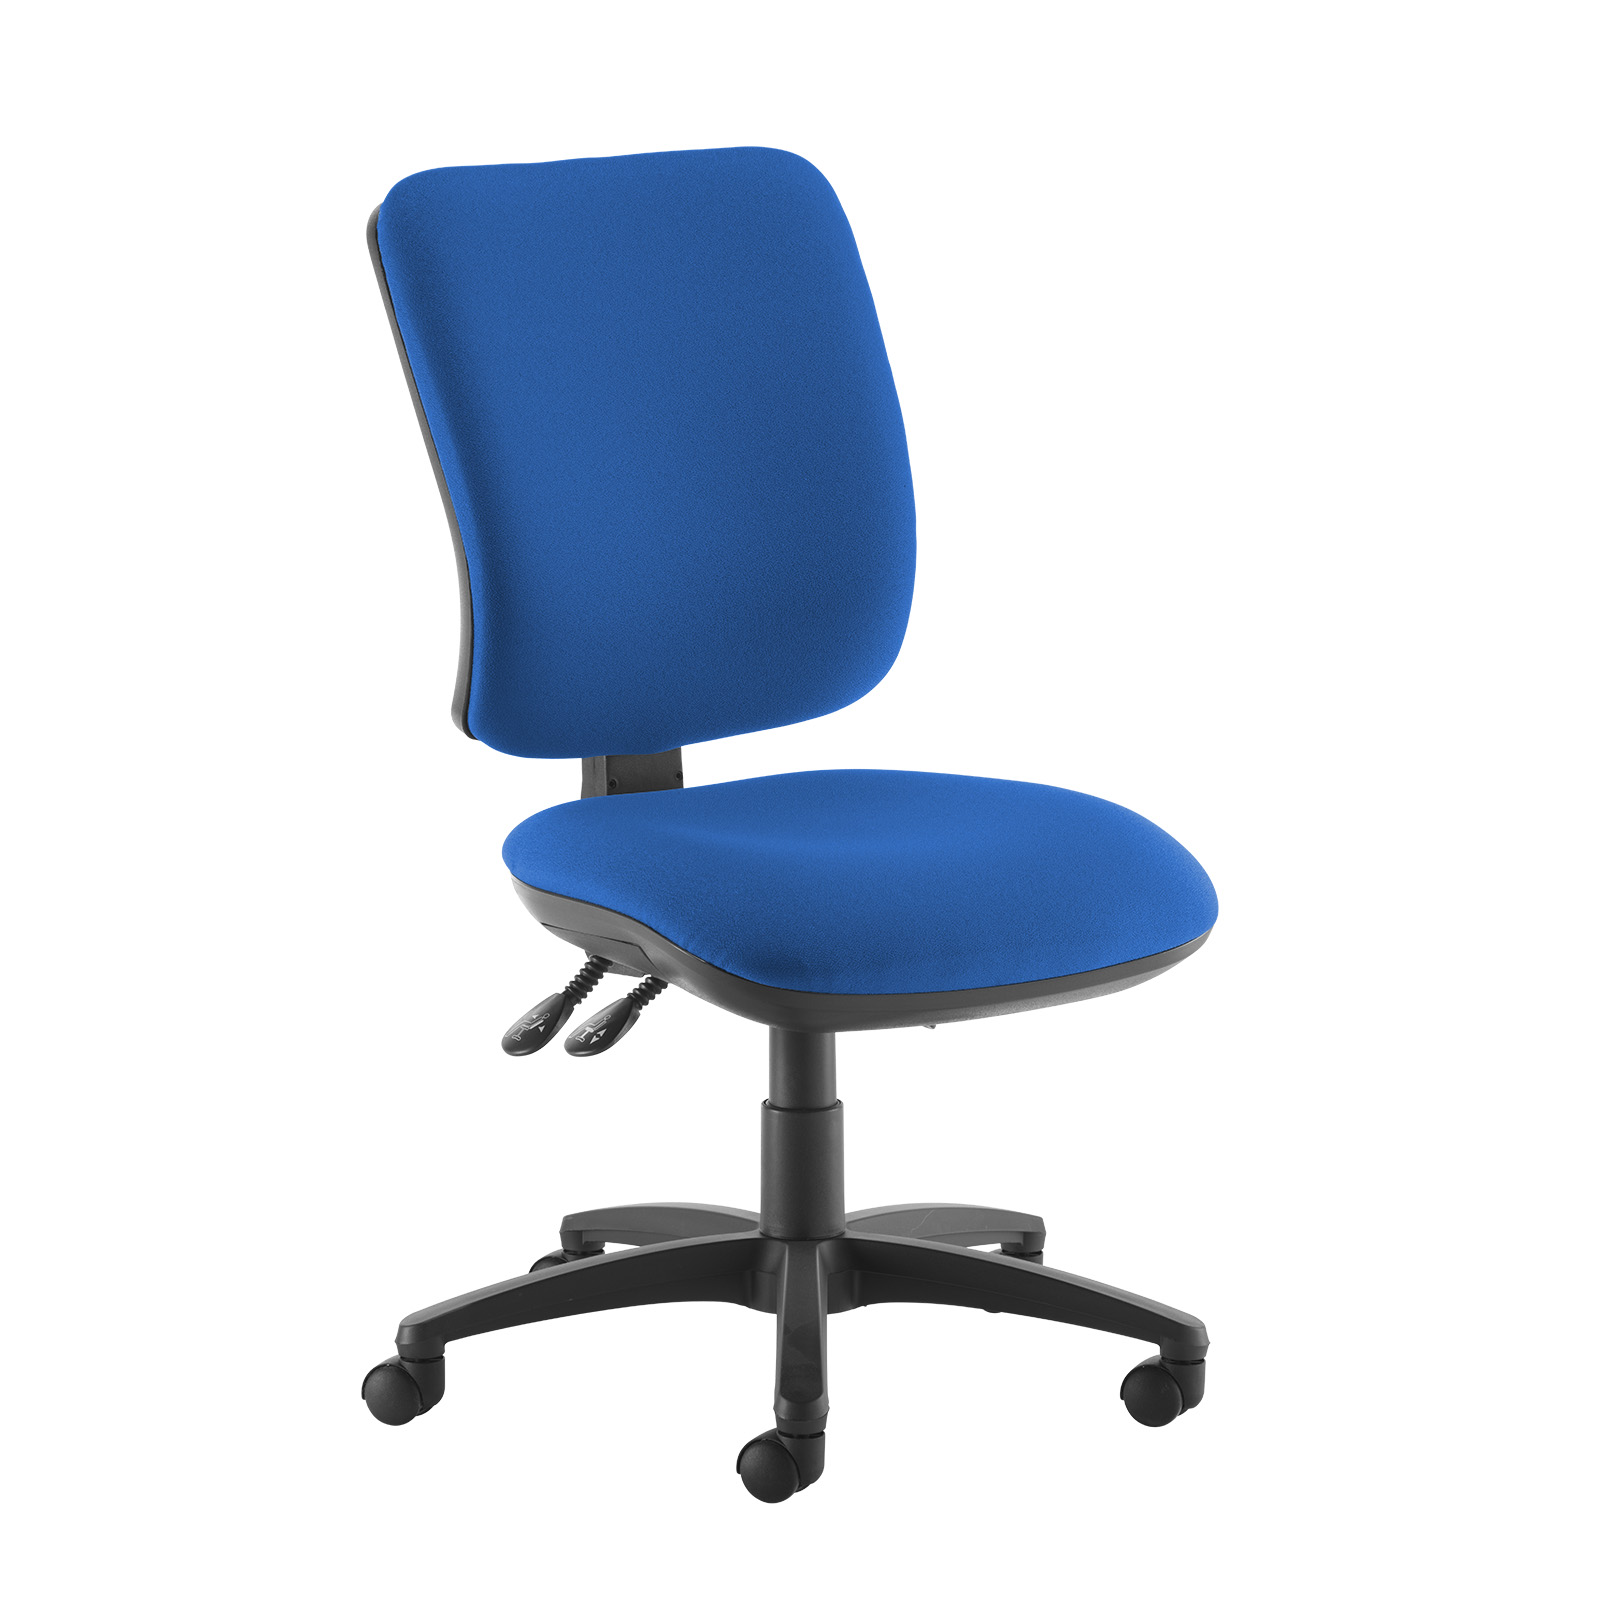 Desk Chairs Senza high back operator chair with no arms - blue